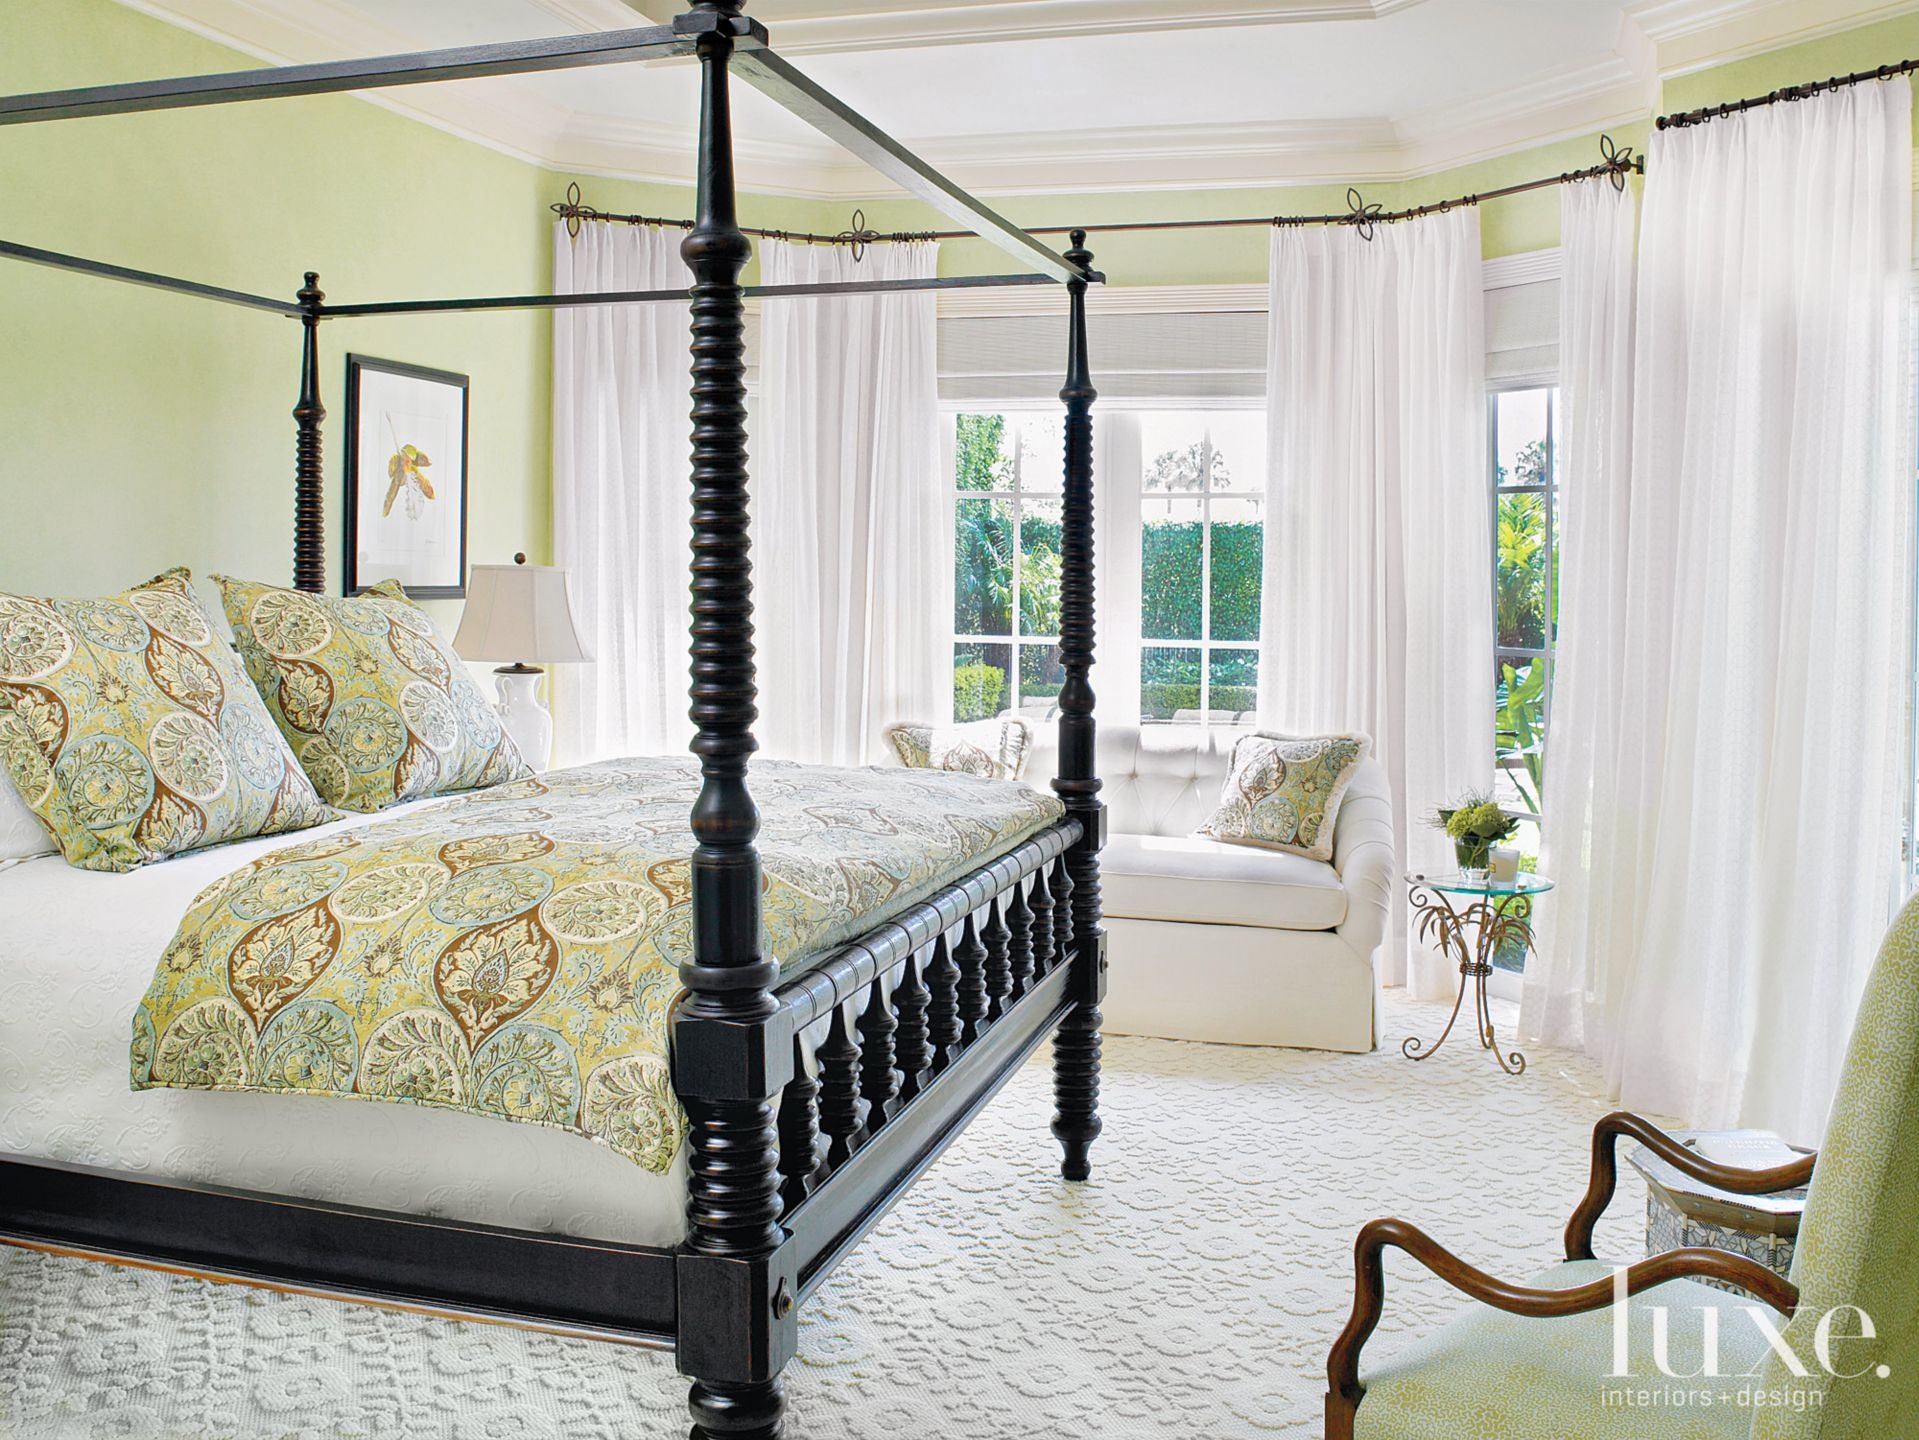 Mediterranean Green Bedroom with Turned-Spindle Bed